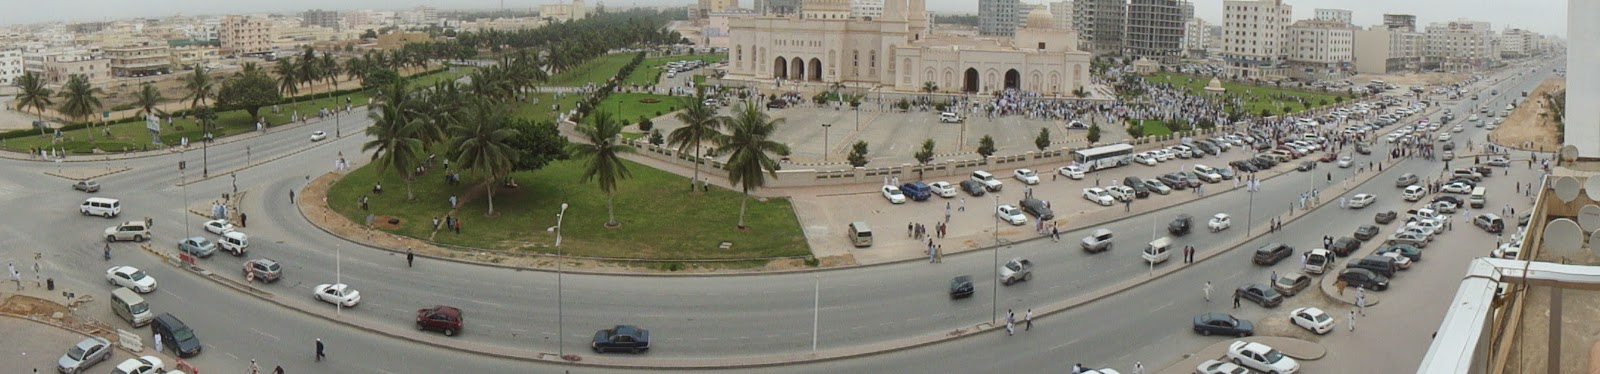 My Travelogues: A Glimpse of Salalah - Loved, Laughed and Lived!